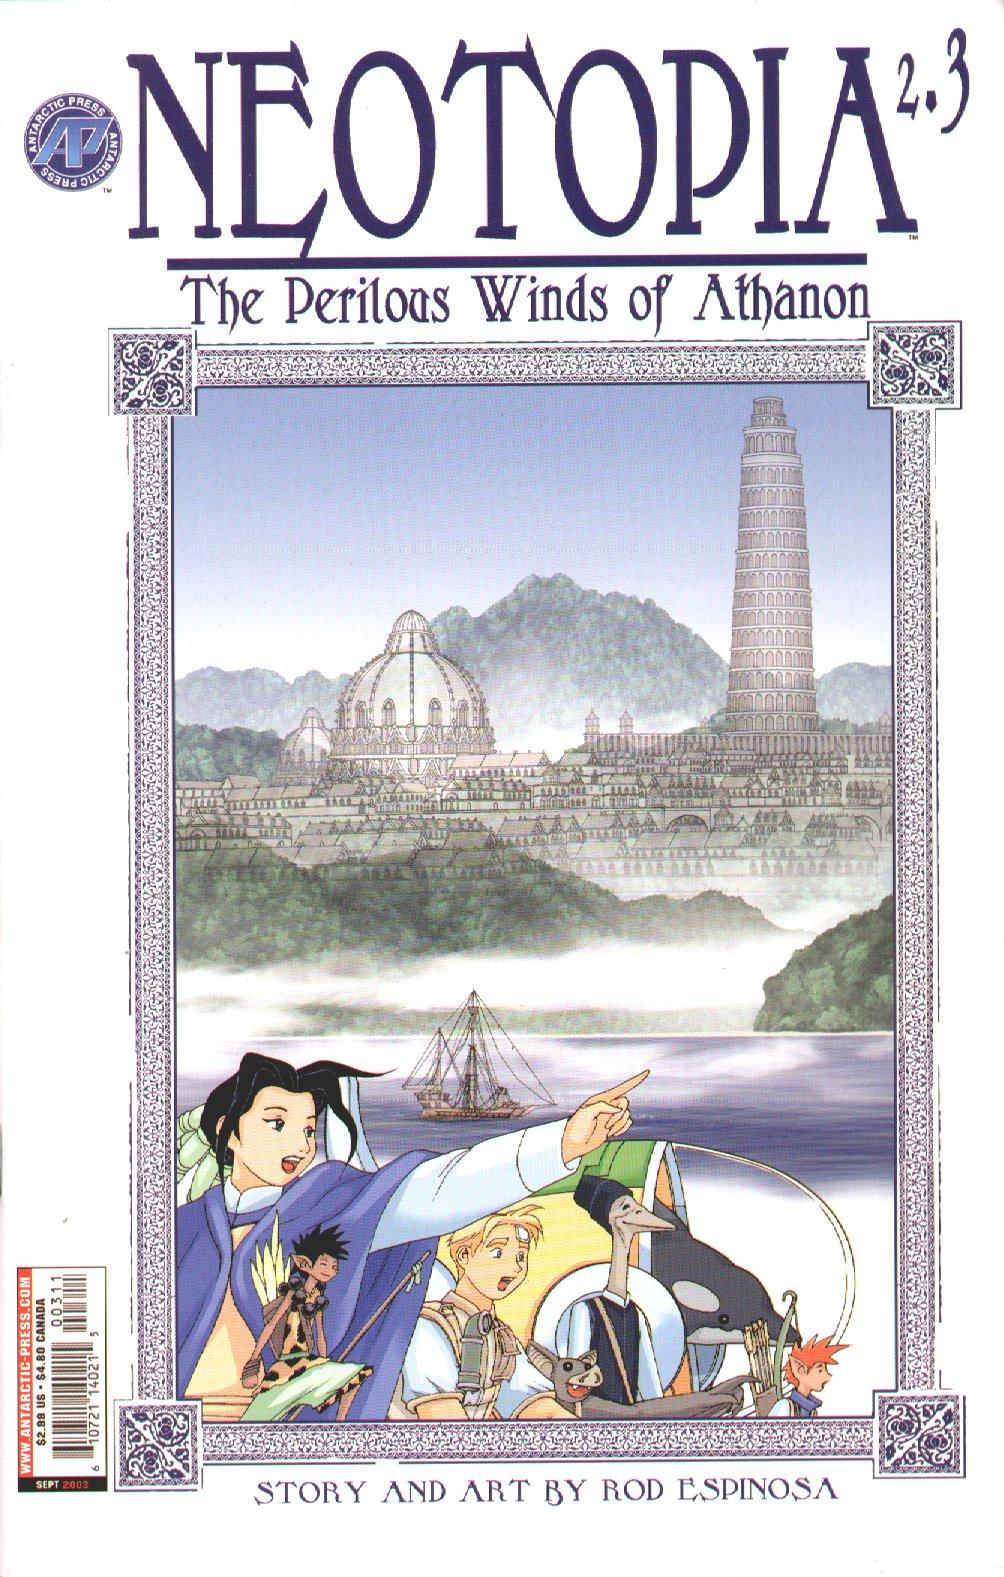 Neotopia v2-The Perilous Winds of Athanon 001-005 2003 Neotopia v2 03 2003 nuther